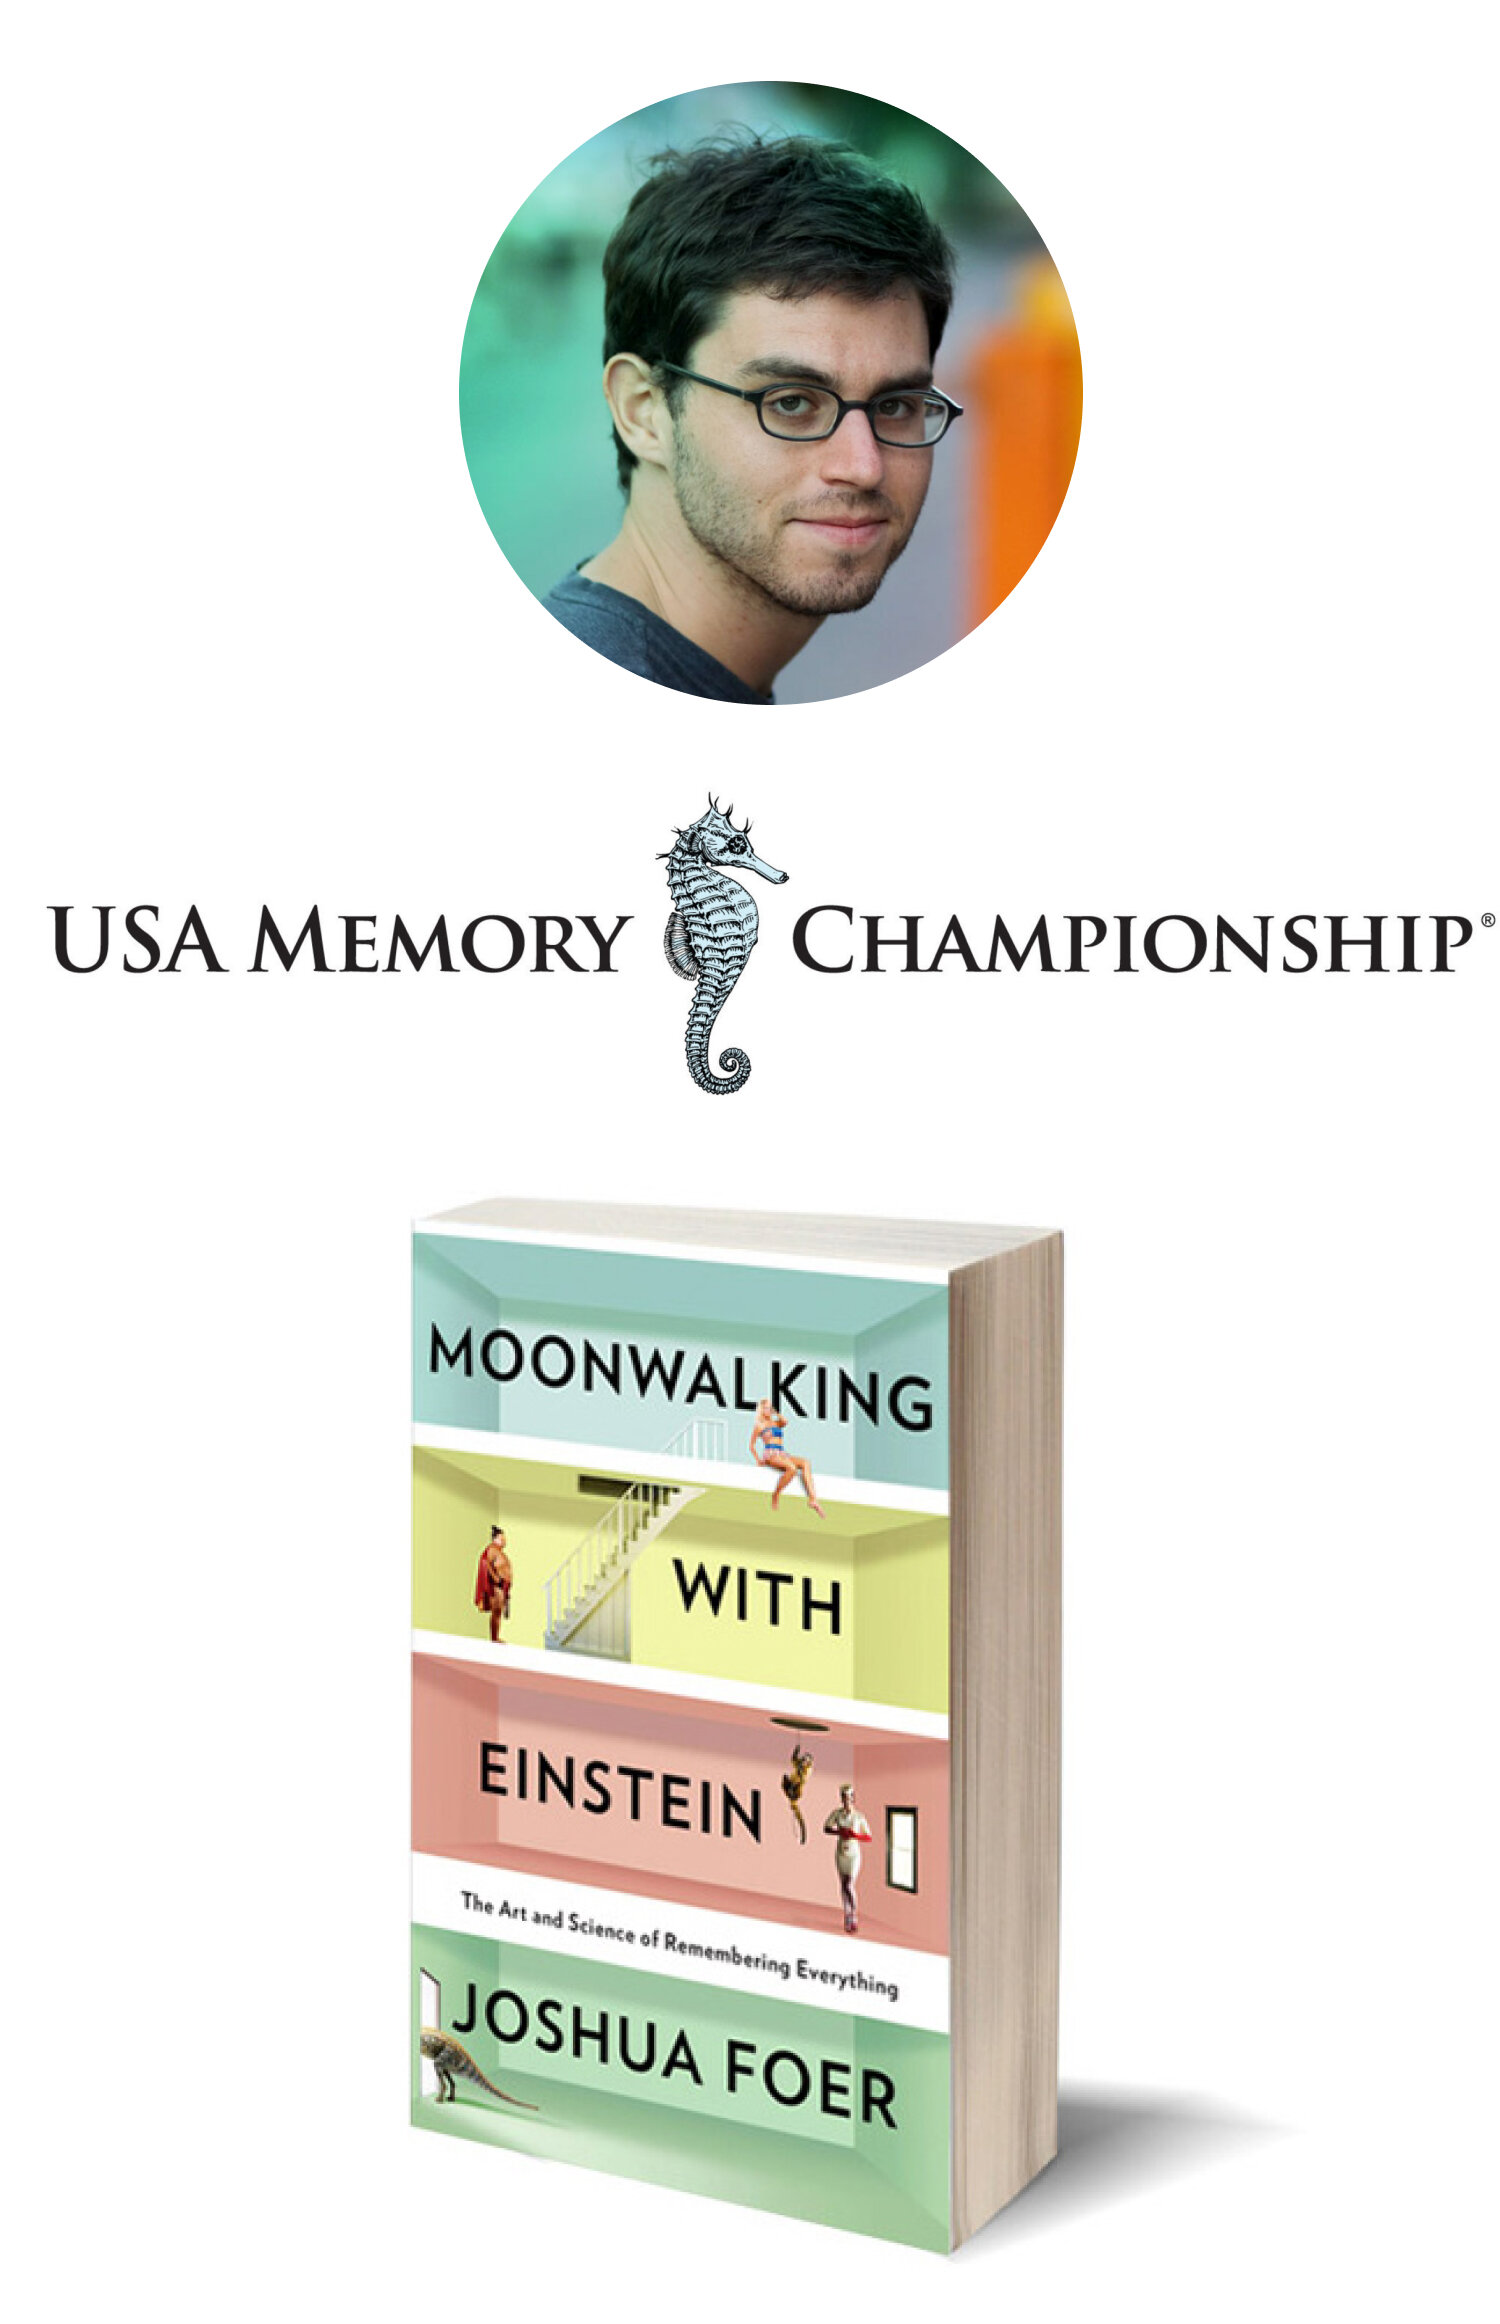 Joshua Foer, a freelance journalist out of New Haven Connecticut was reporting on the USA Memory Championships when he decided to try the techniques he was observing and went on to win the championship and set a new record. - Understanding how memory works can provide the scaffolding by which to build deeper relationships with our audience. We look at 6 questions that help create an audience outline that merges with the basis of memory and storytelling.